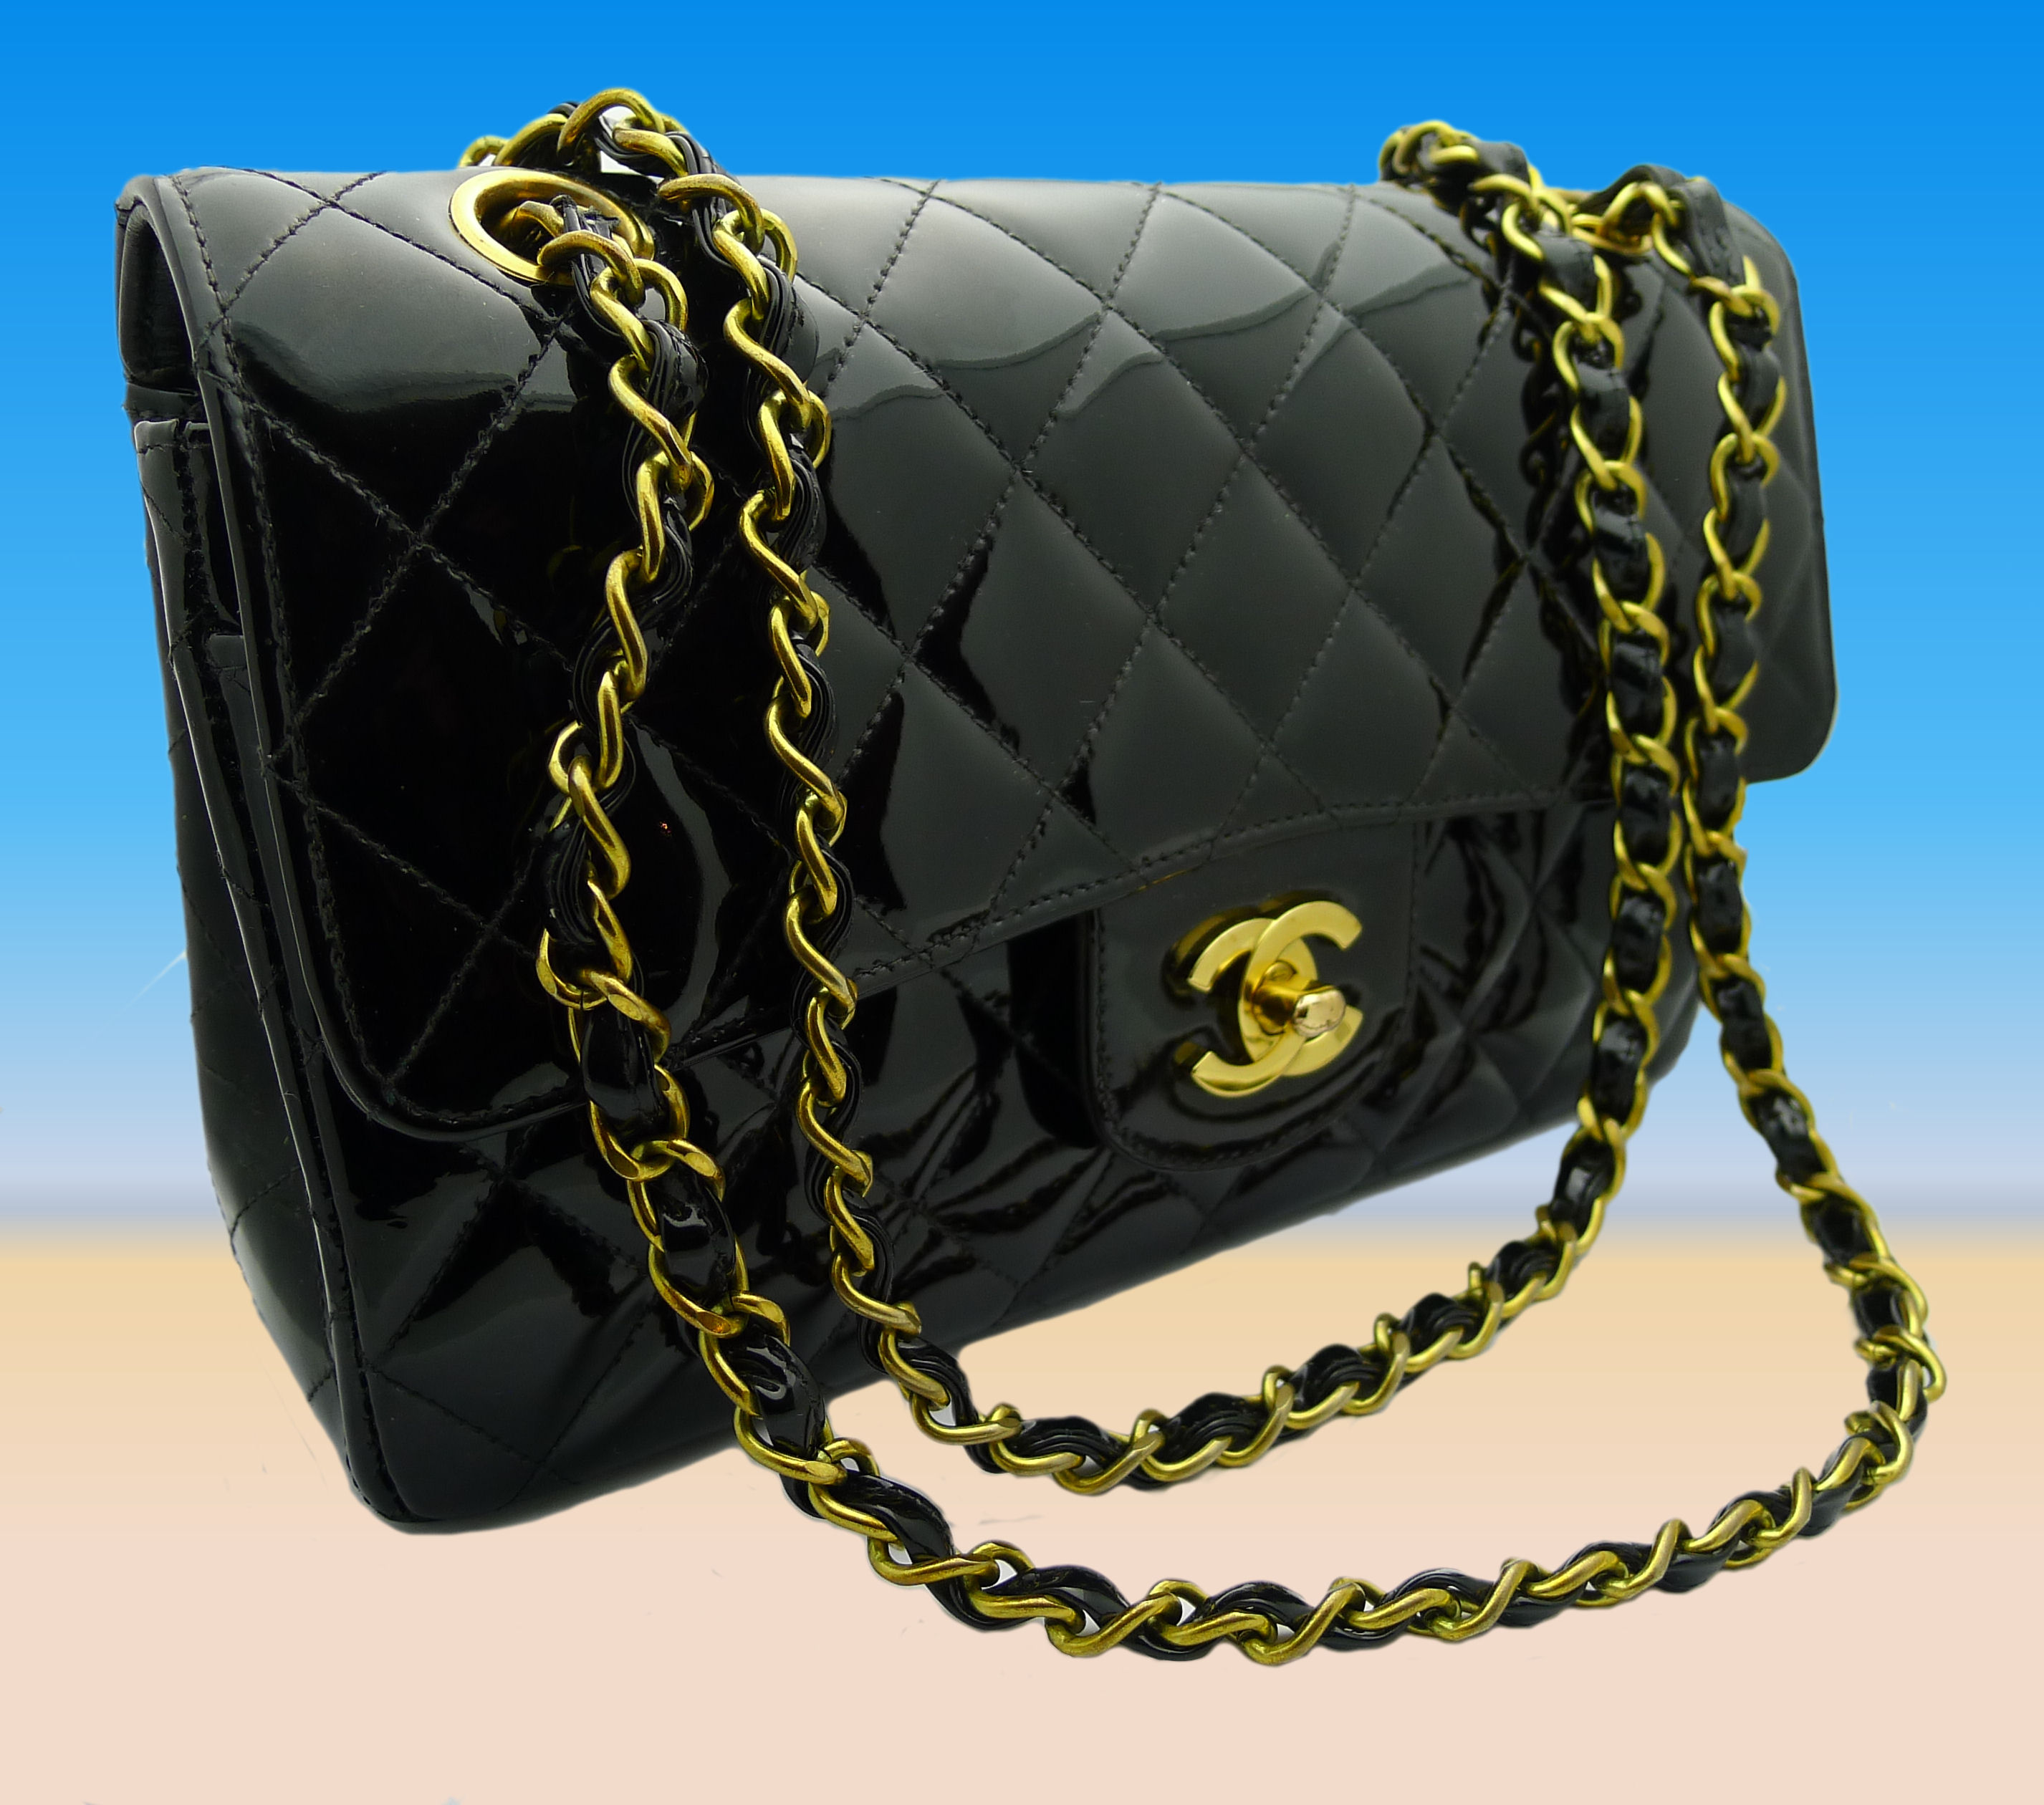 chanel tasche handtasche schwarz lackleder ebay. Black Bedroom Furniture Sets. Home Design Ideas